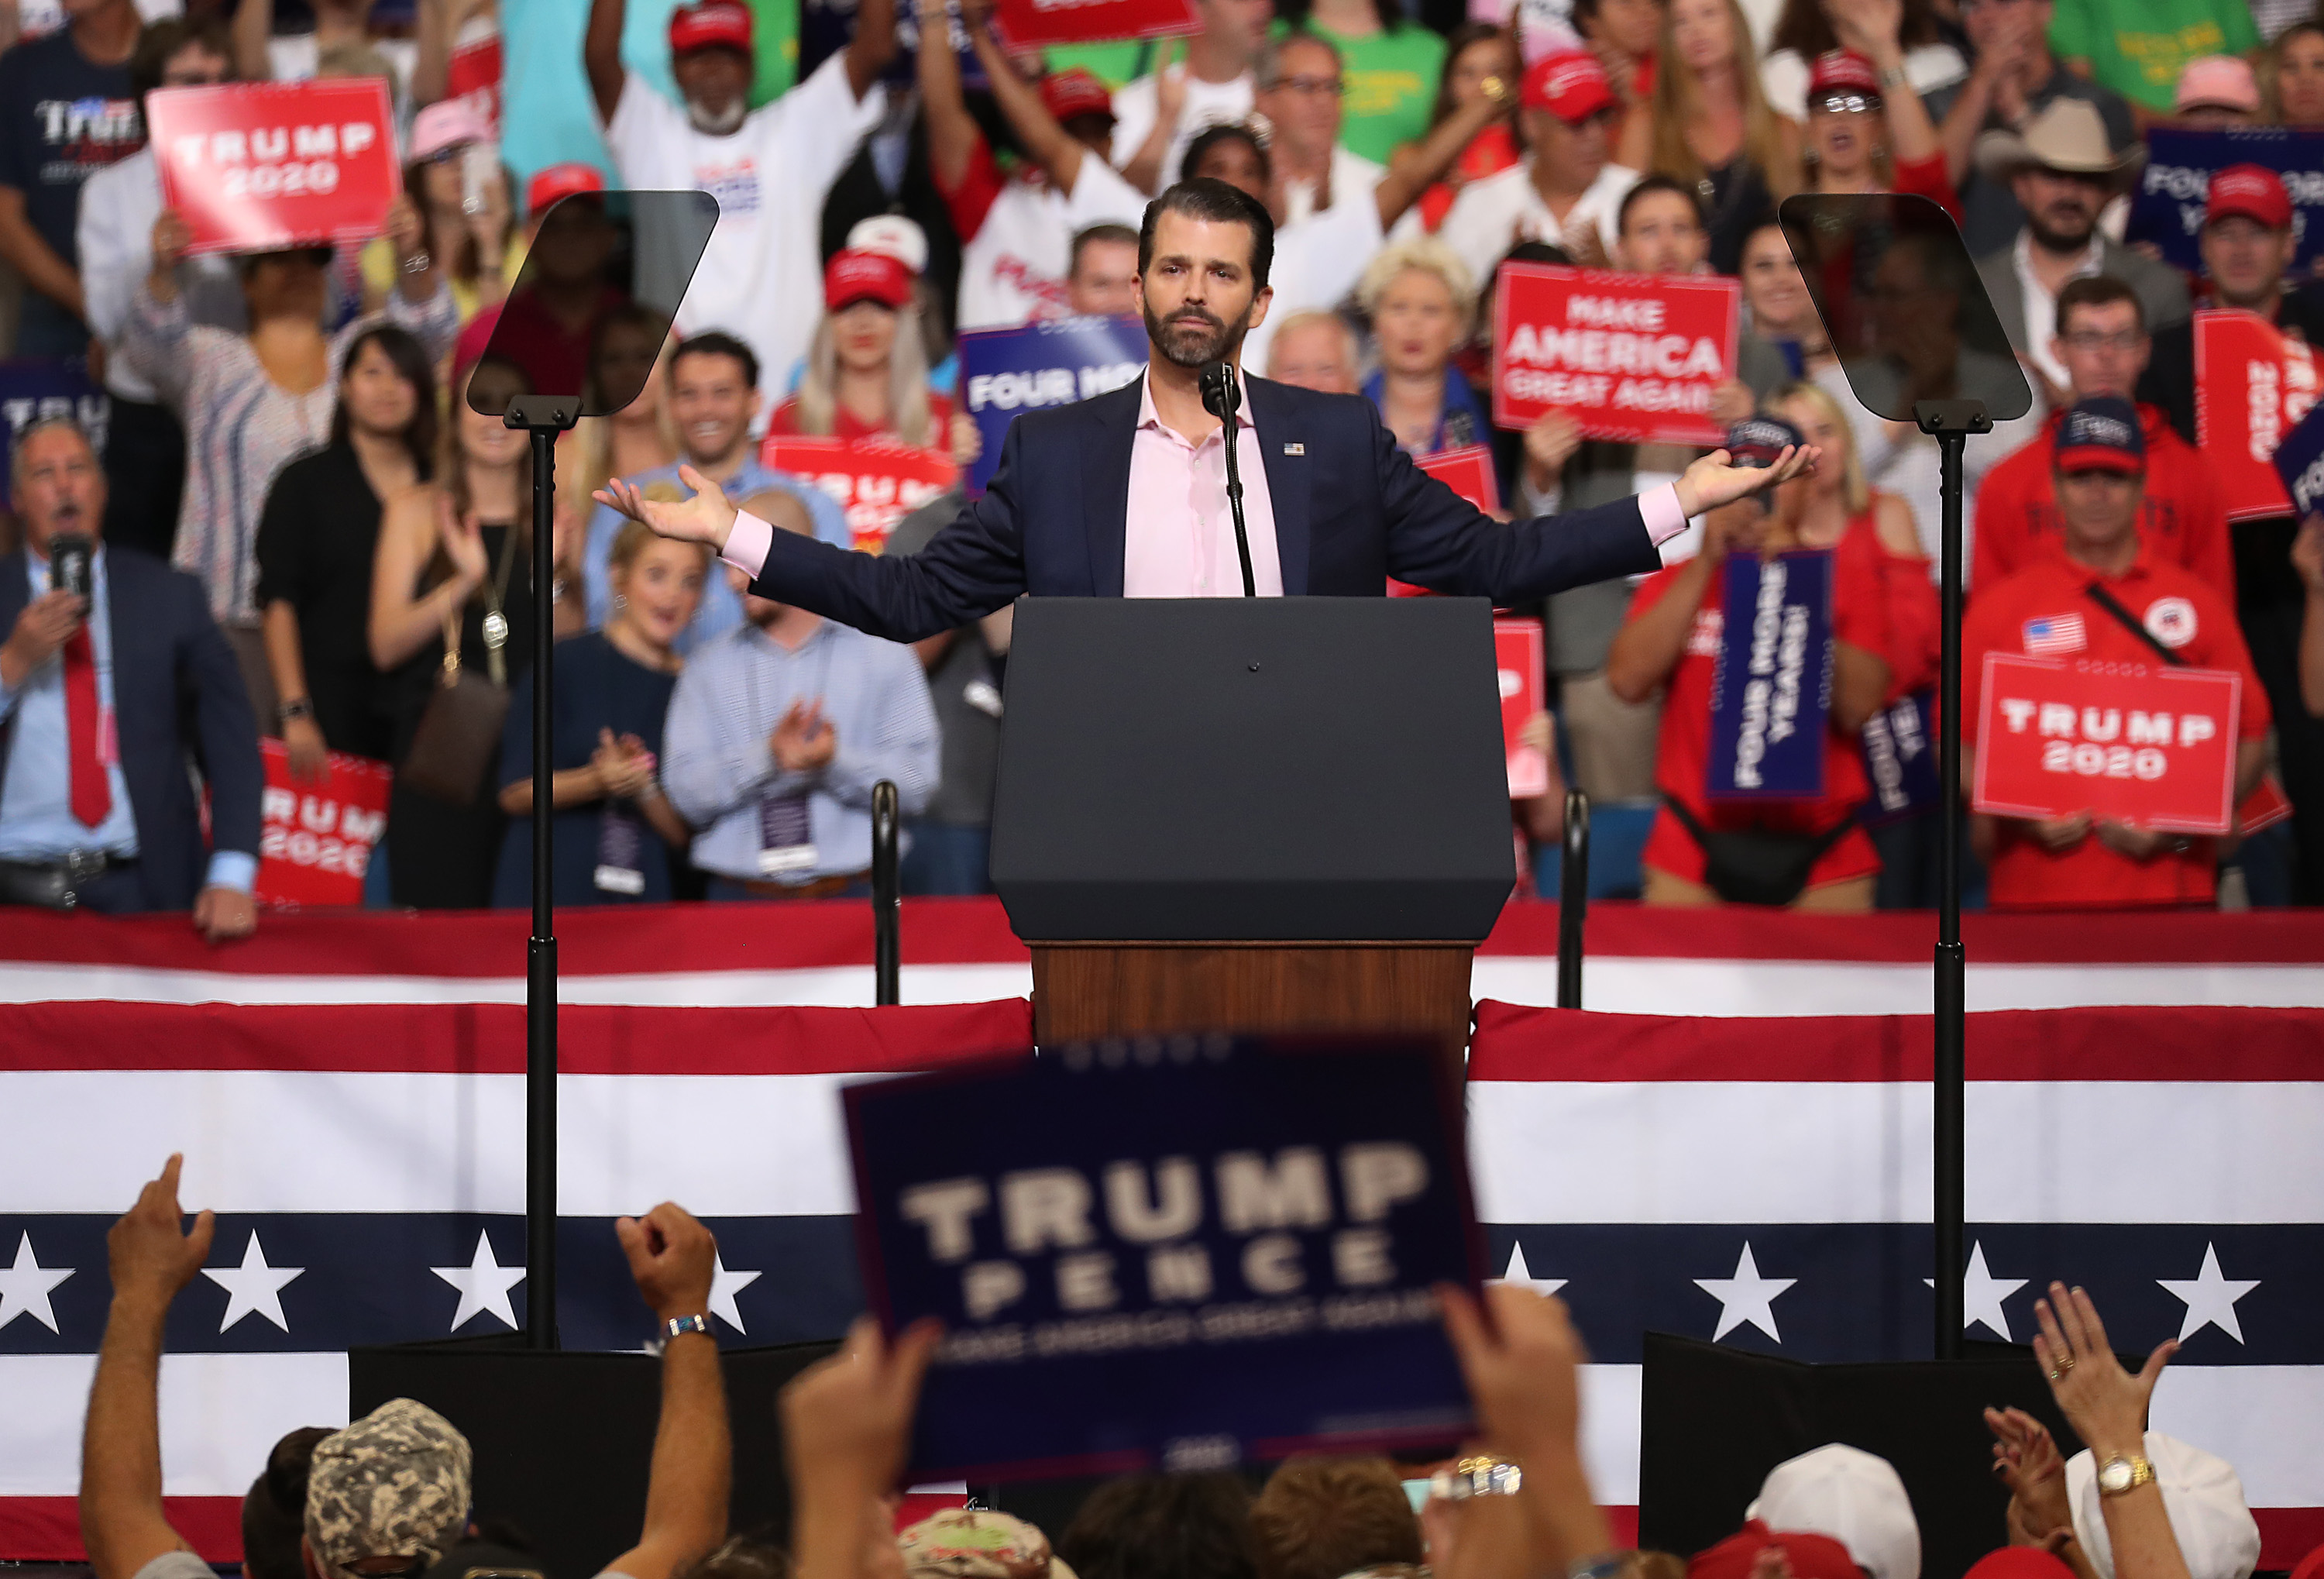 Trump Jr. incensed by lack of decency as cheerleaders learn on Twitter they're being fired